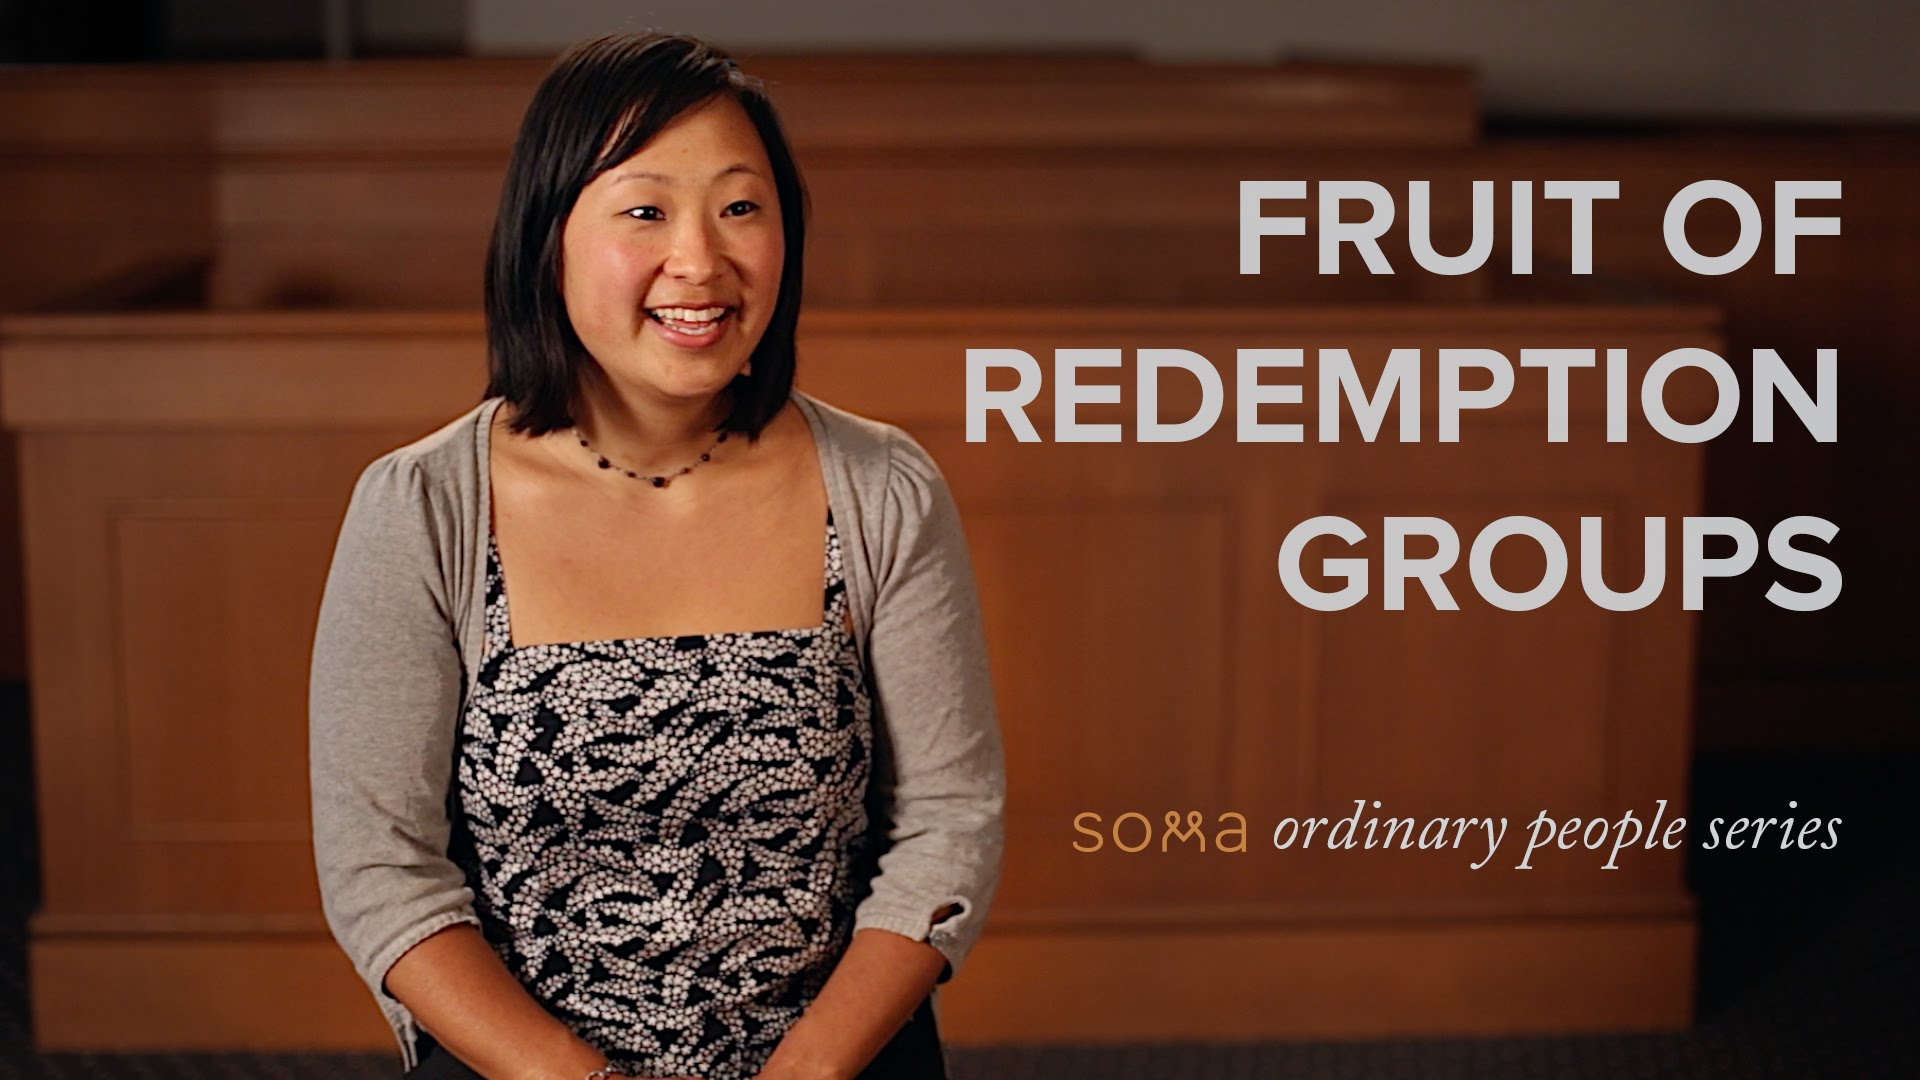 fruit-of-redemption-groups